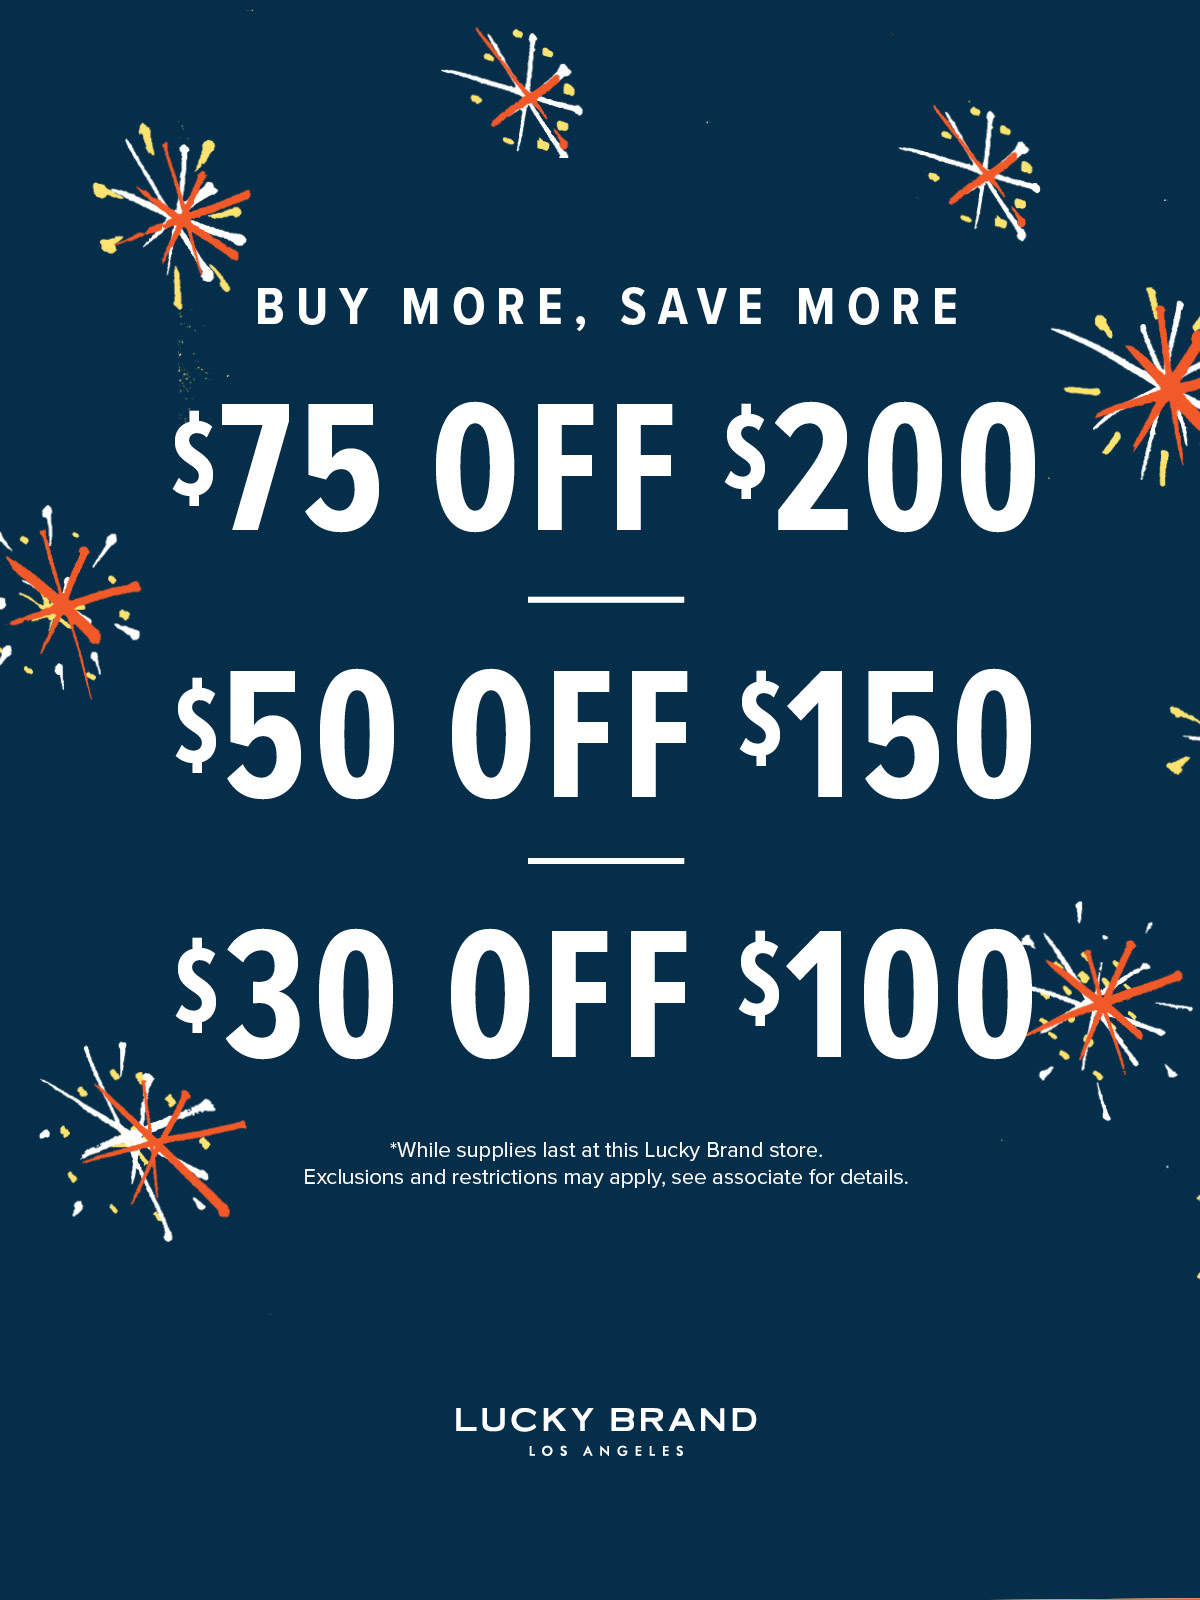 Buy More, Save More from Lucky Brand Jeans